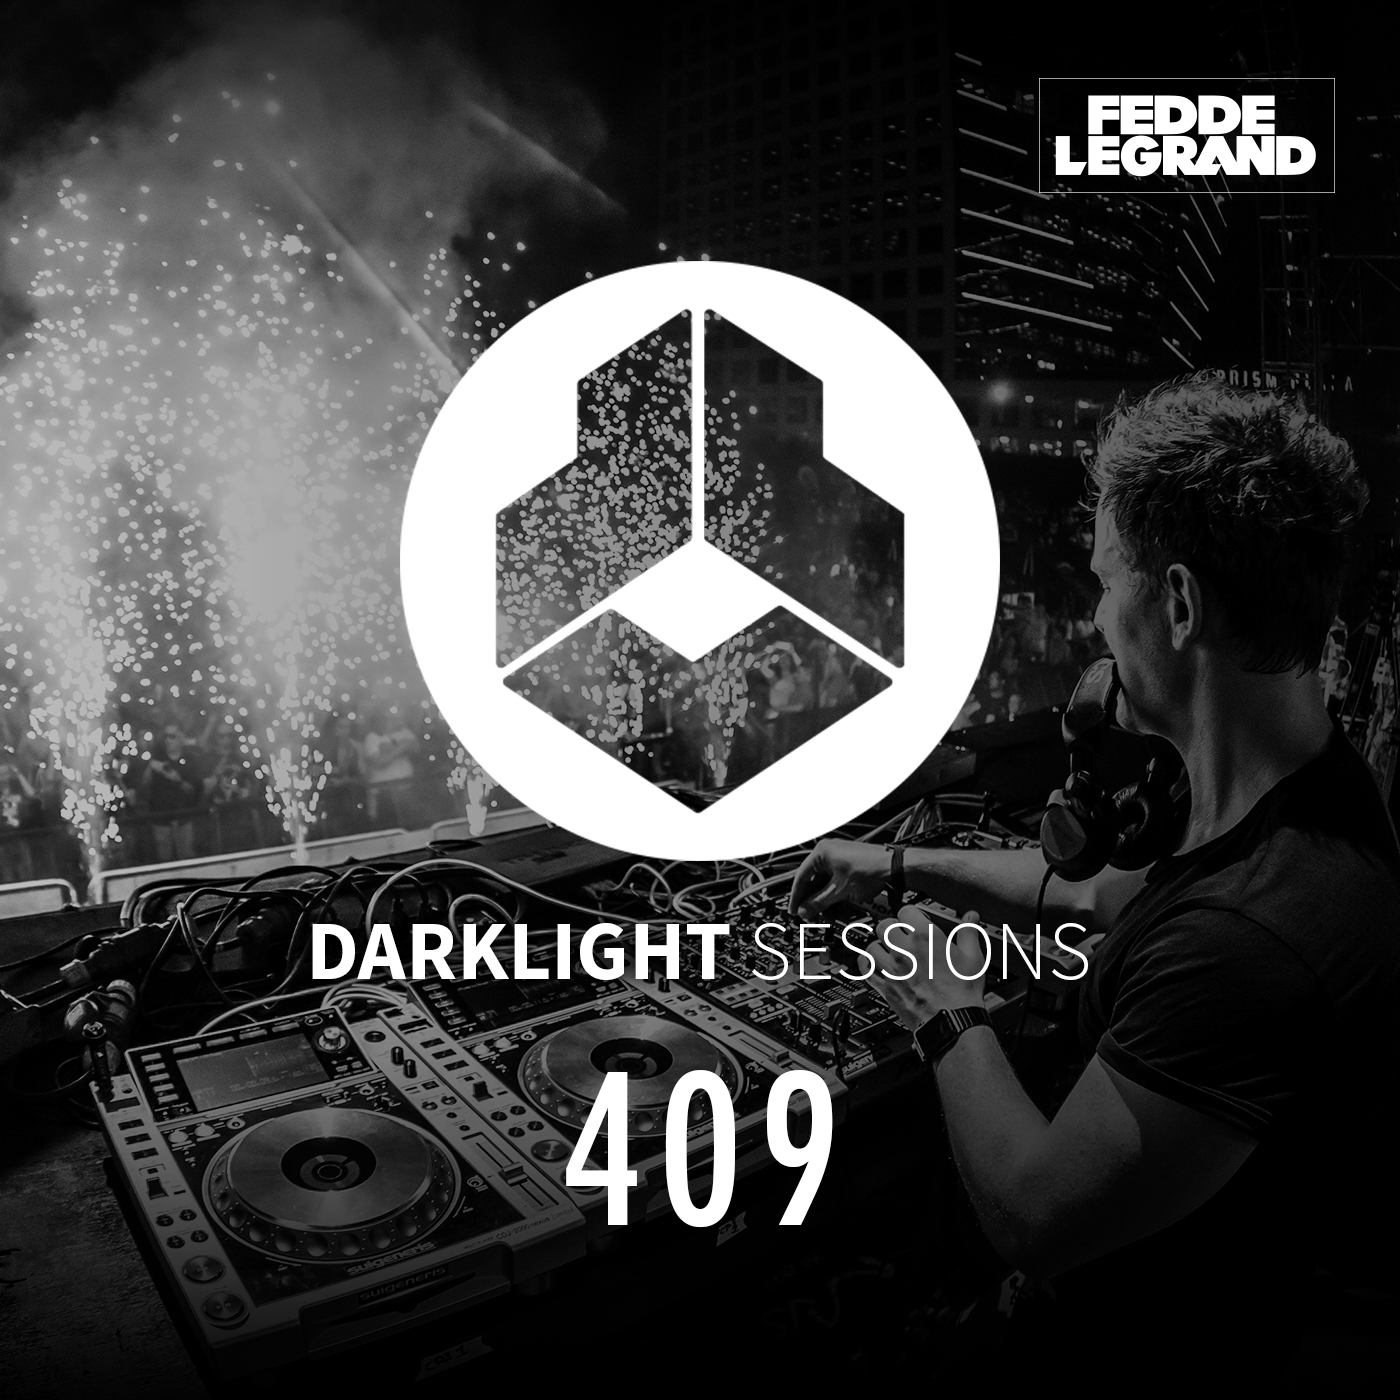 Darklight Sessions 409